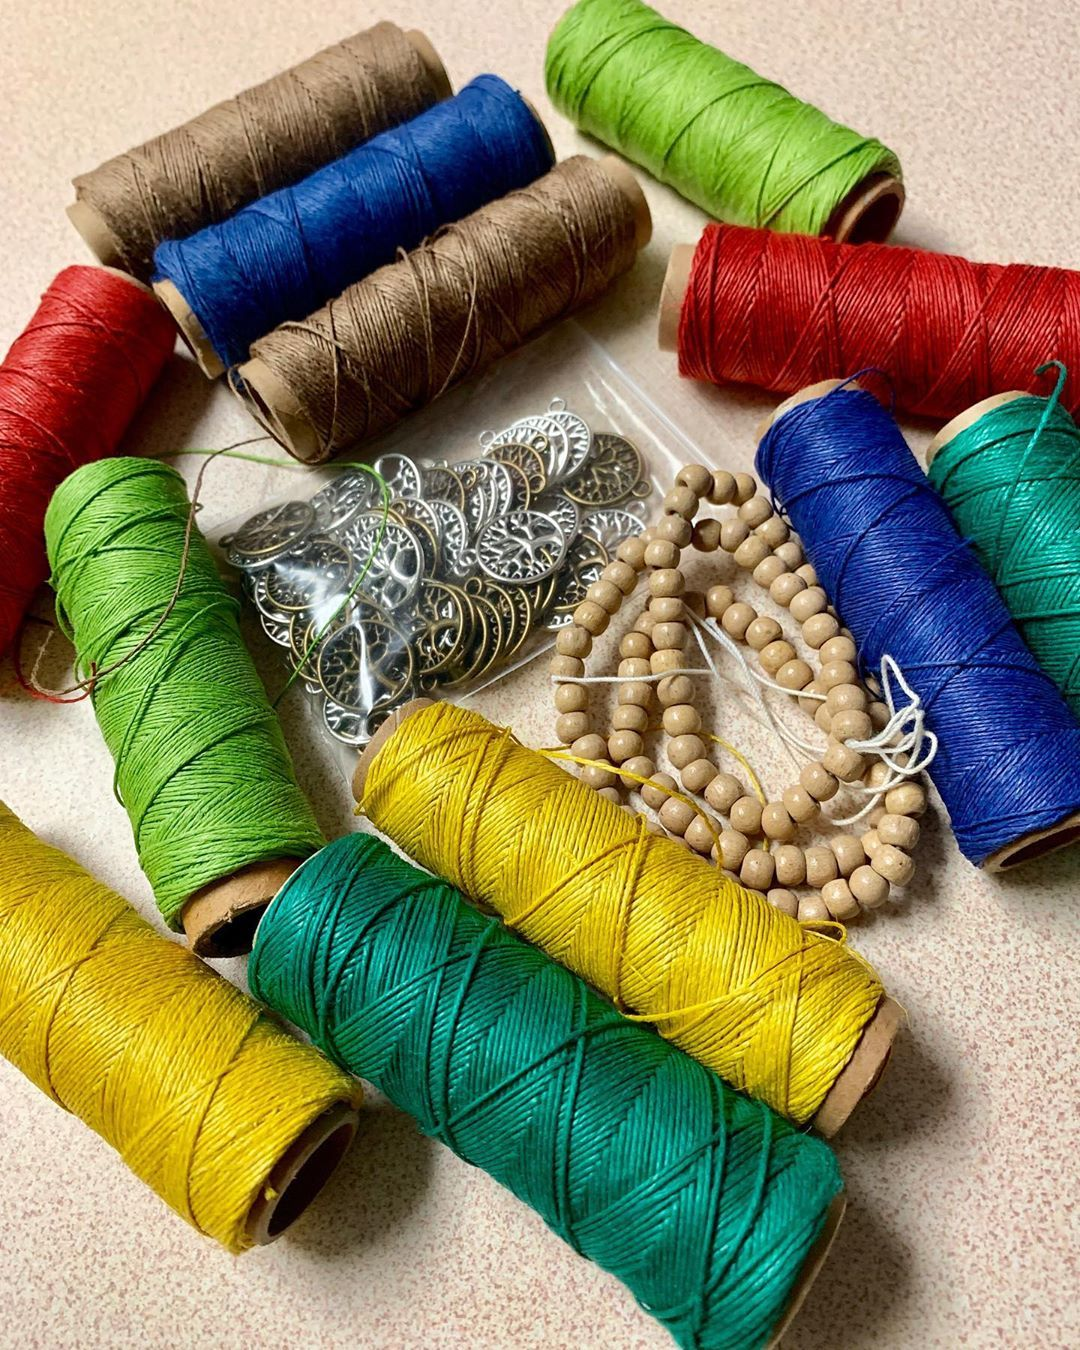 Our Products Are Made From Hemp Cord A Fully Sustainable And Biodegradable Product That Is Both Mold Algae And Uv Ray Re Biodegradable Products Uv Rays Plants